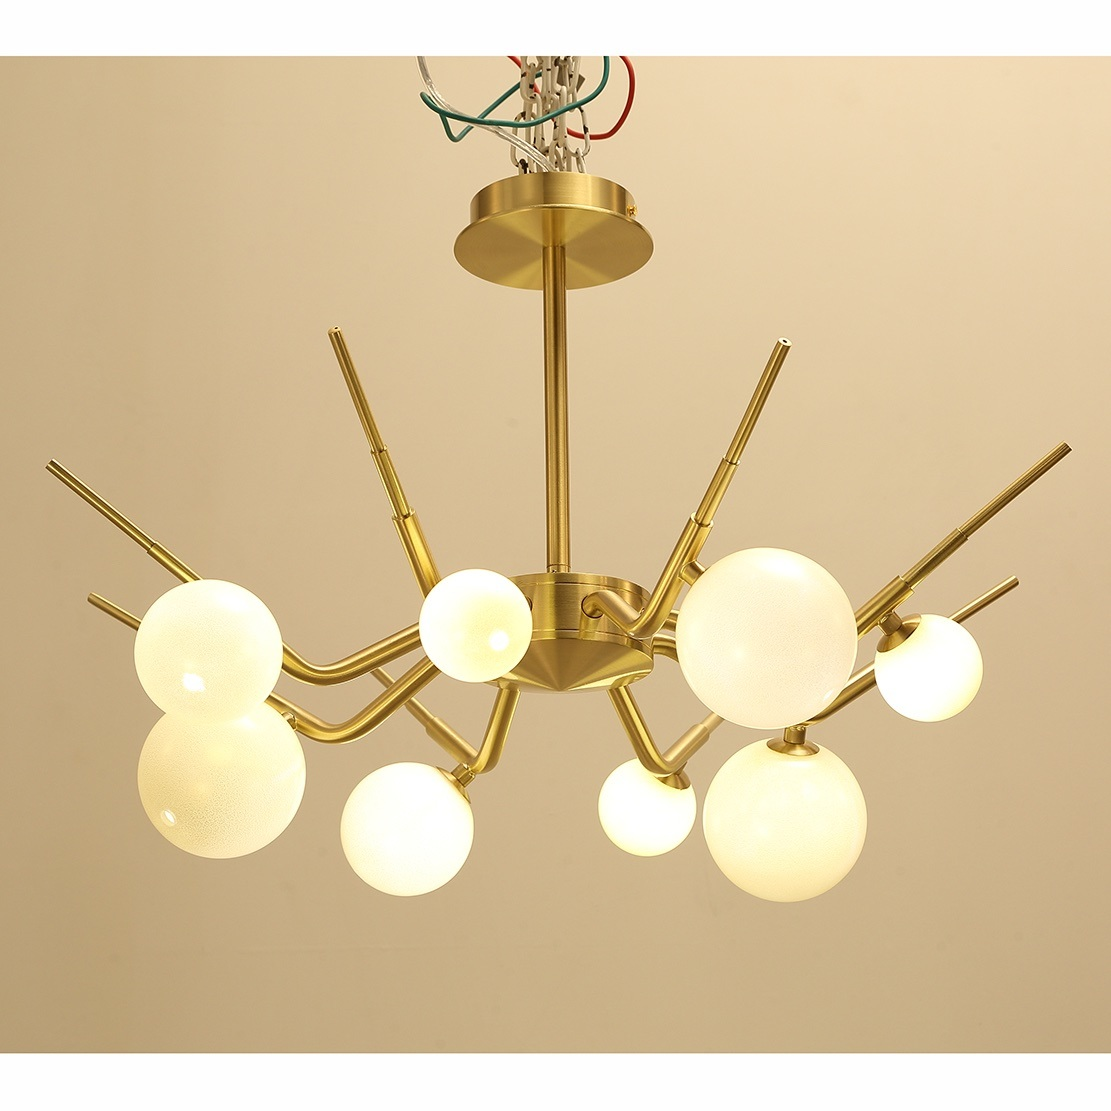 Creative modern fixture high selling factory outlet pendant lighting